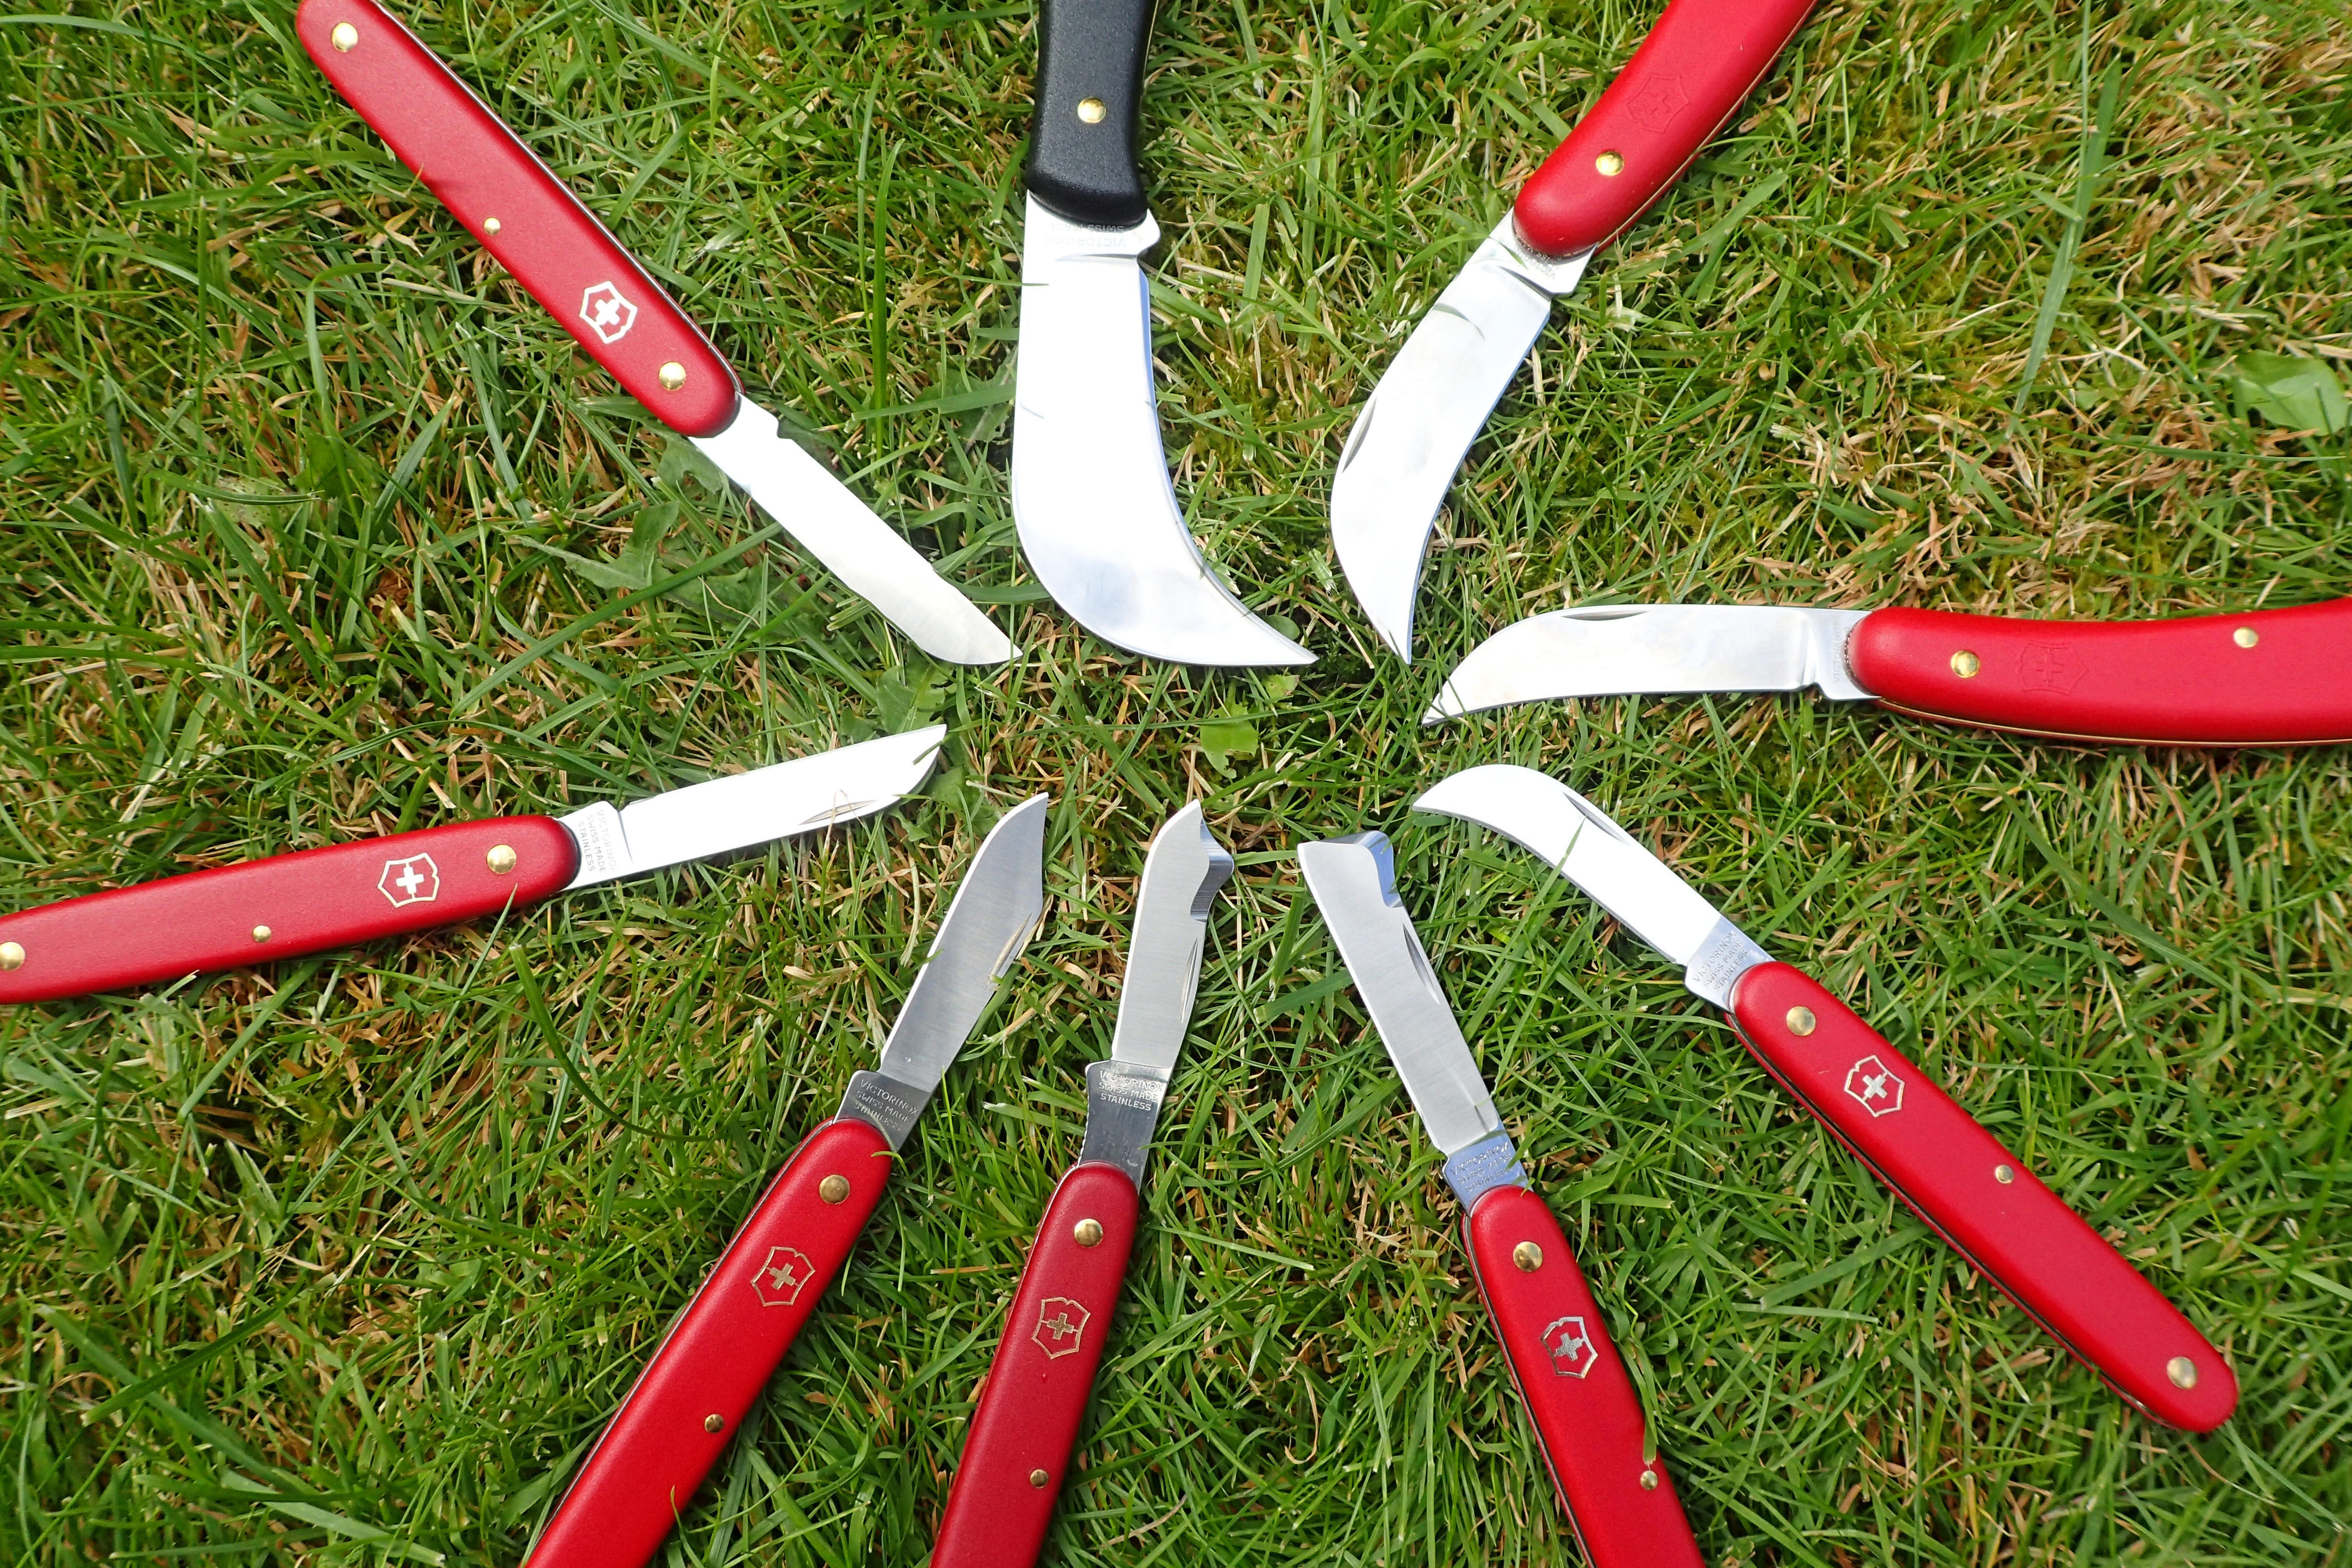 The horticultural knives from Victorinox offer a range of blade shapes and sizes and a smaller range of handle sizes, to suit various tasks